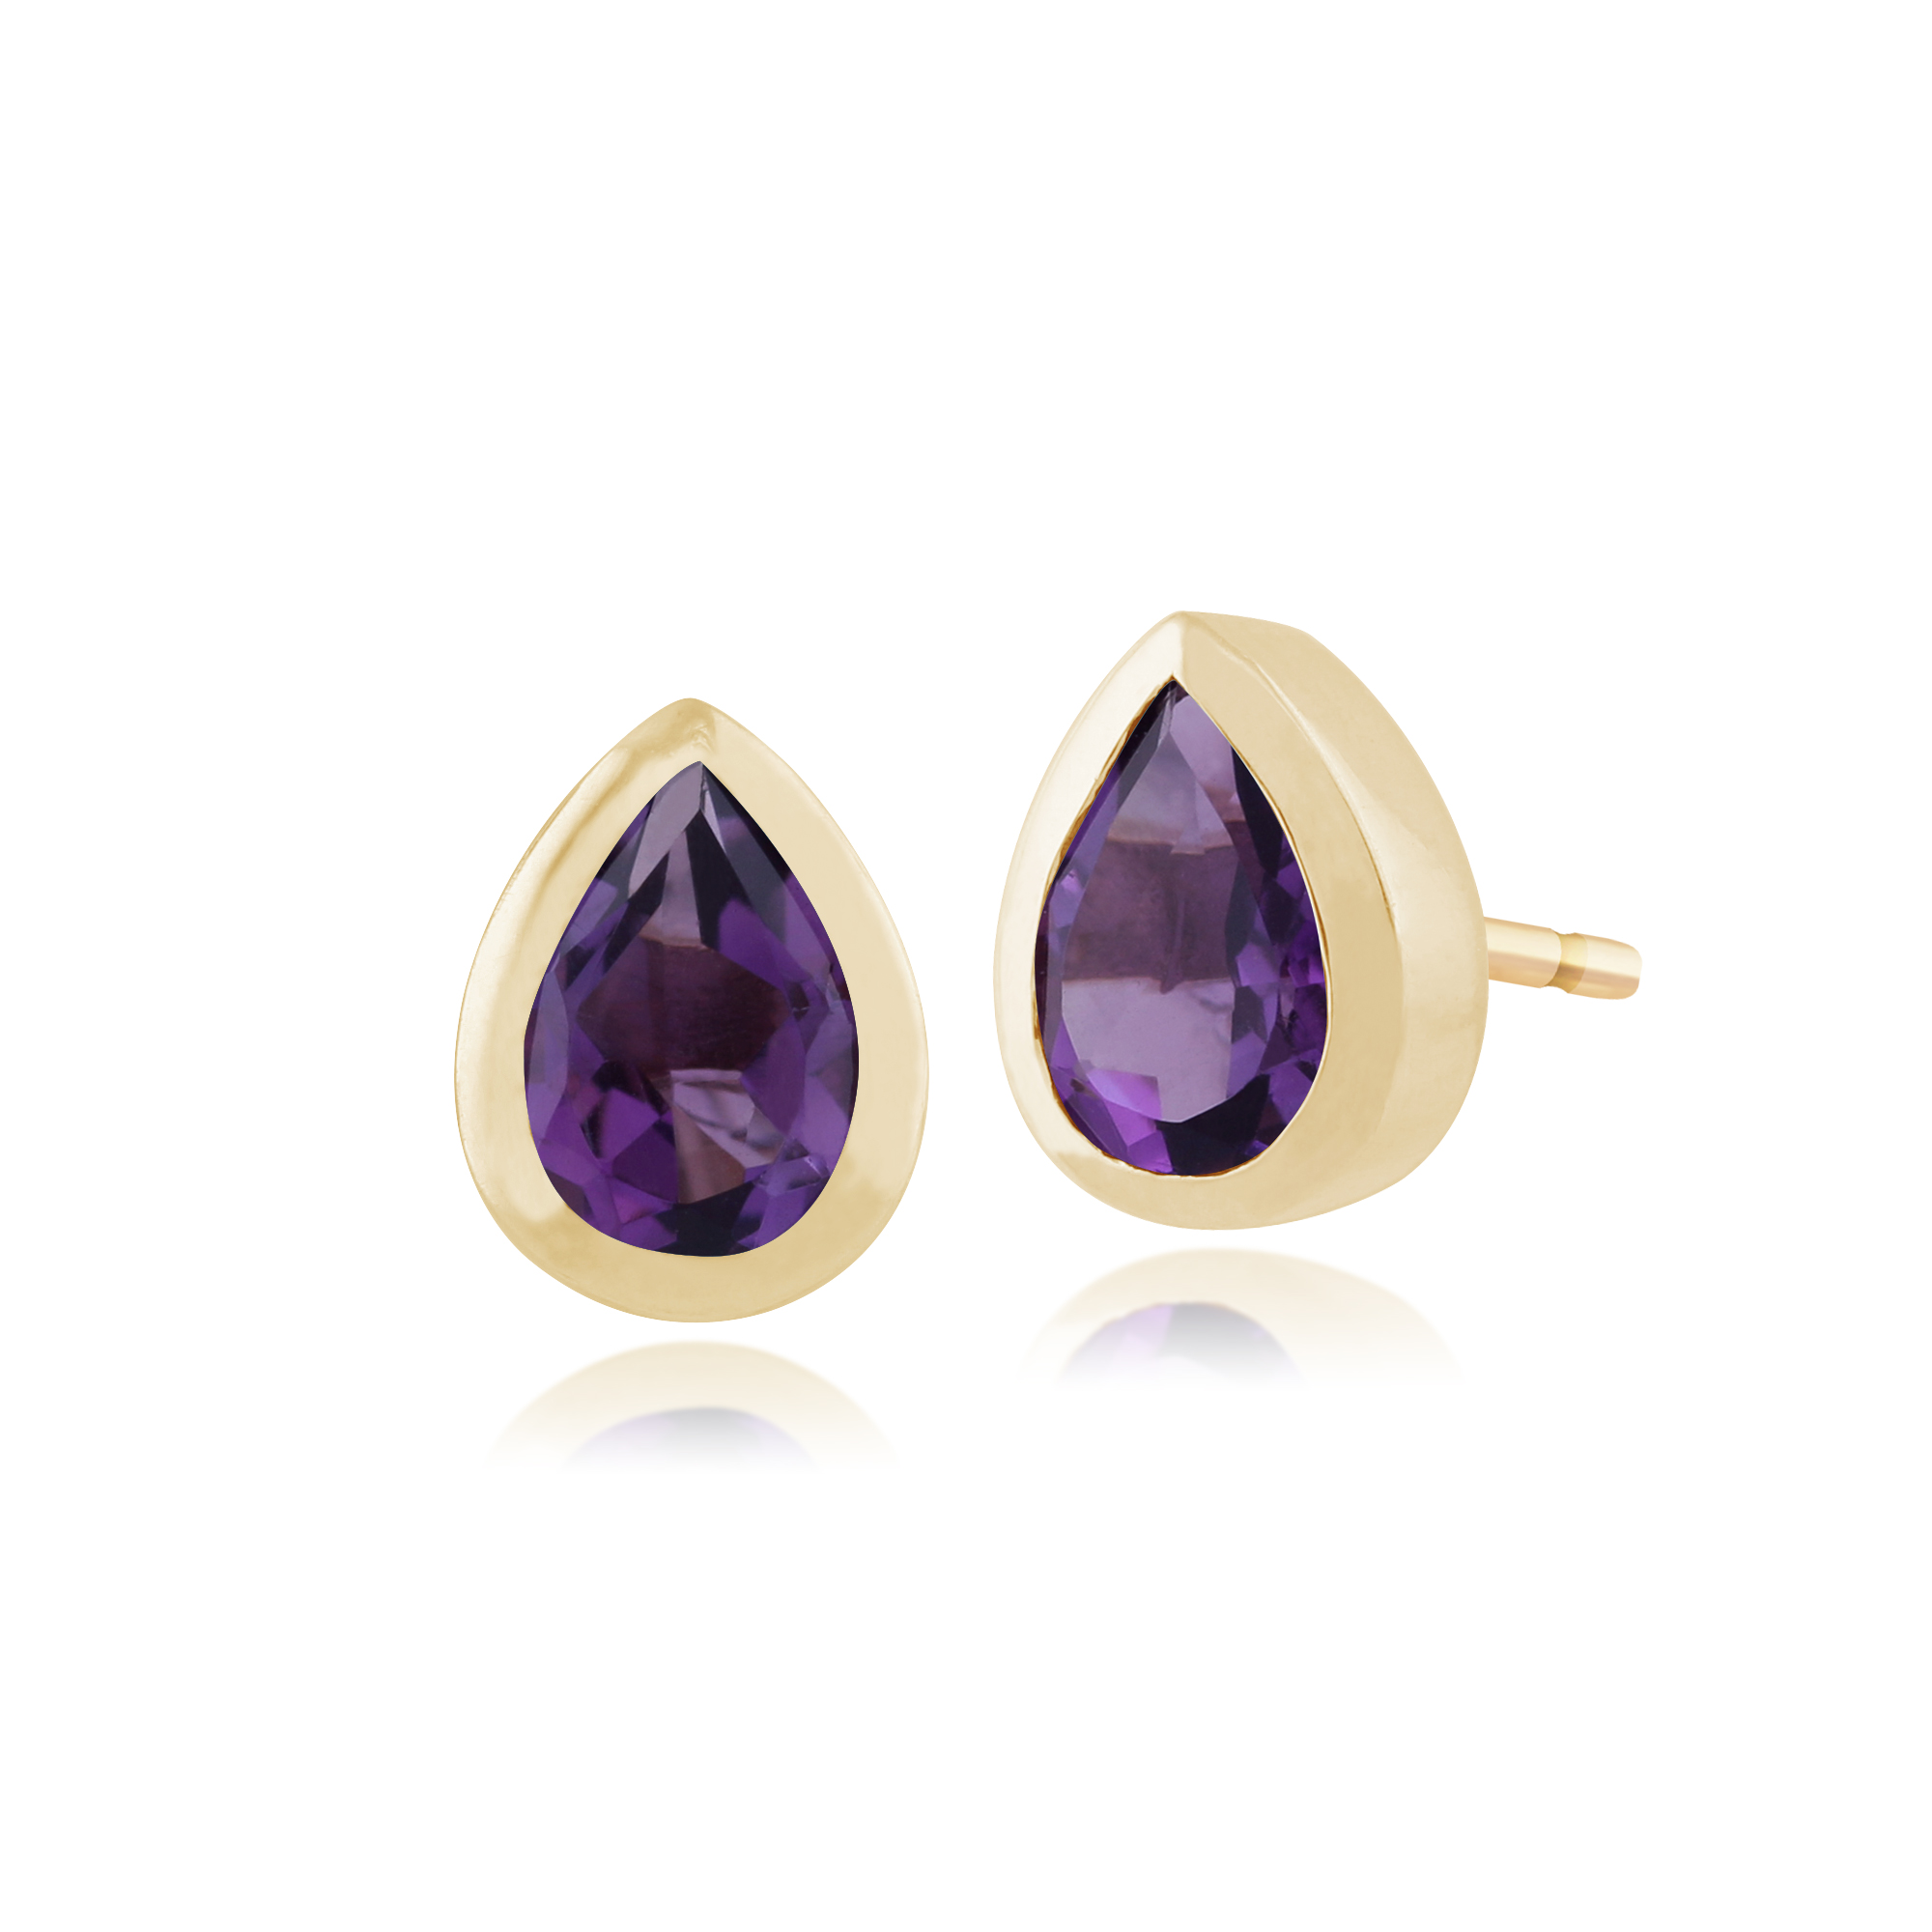 gemondo 9ct yellow gold amethyst stud earrings ebay. Black Bedroom Furniture Sets. Home Design Ideas